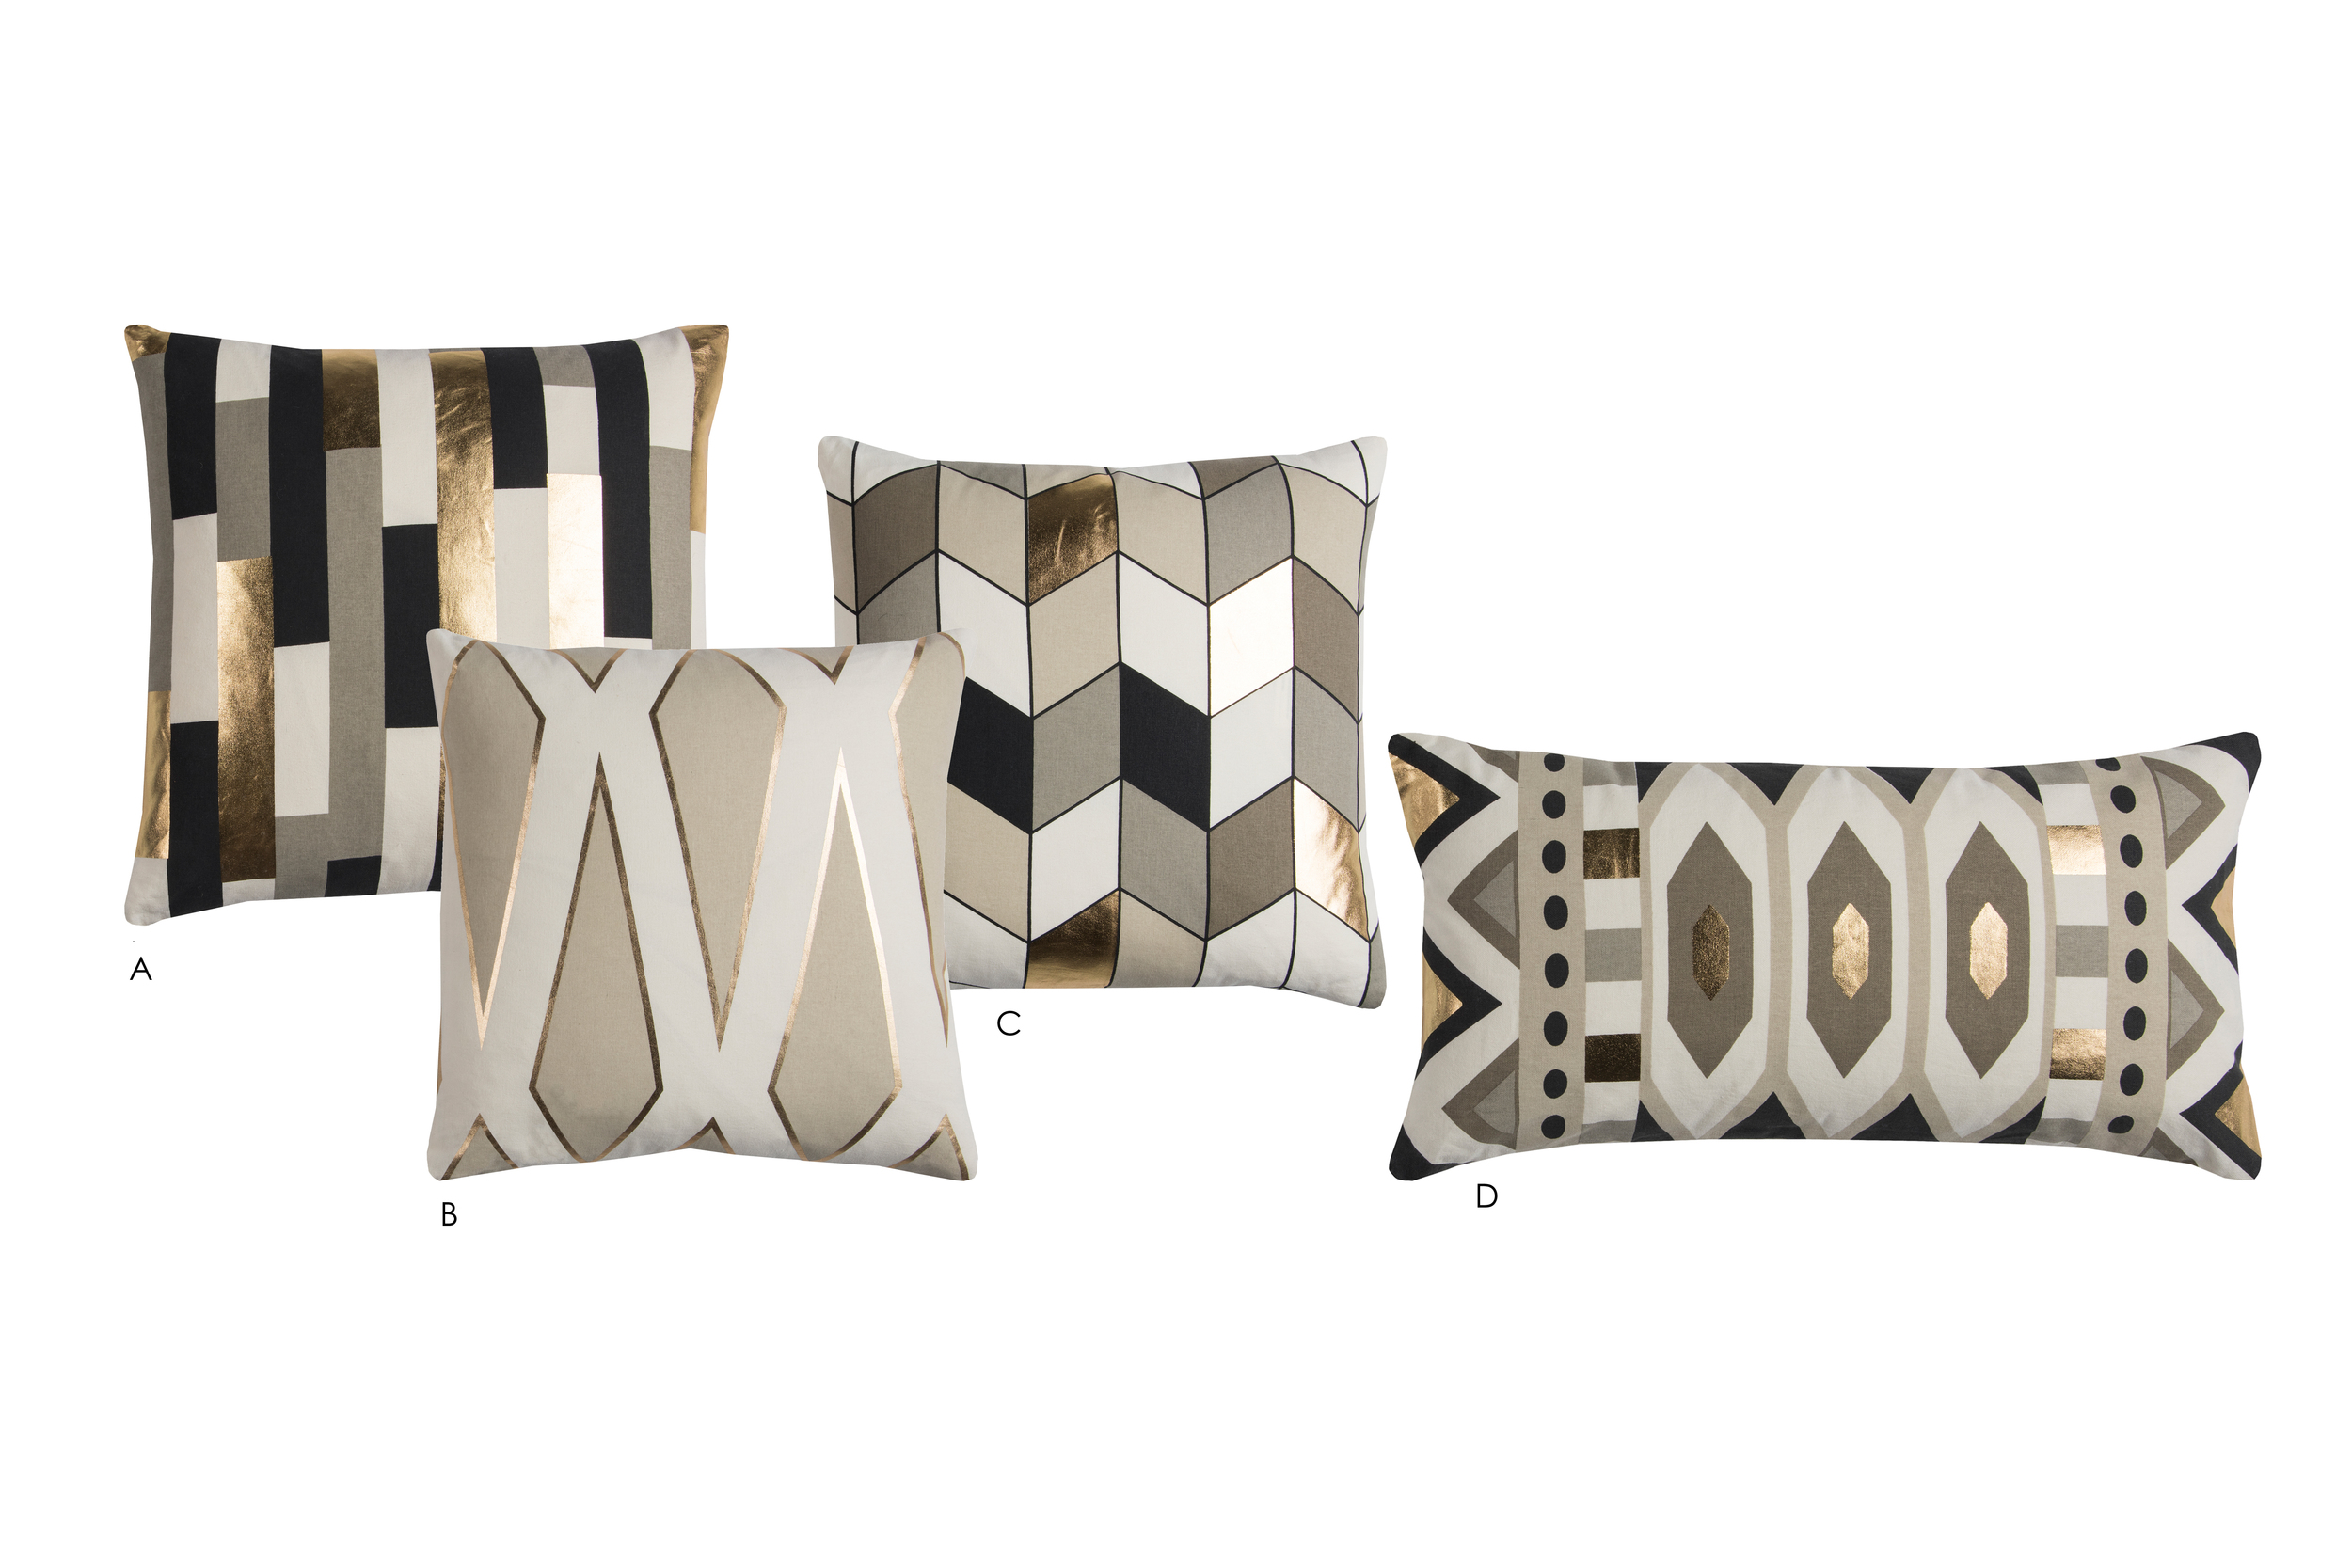 RACHEL KATE FOR RIZZY HOME PILLOWS